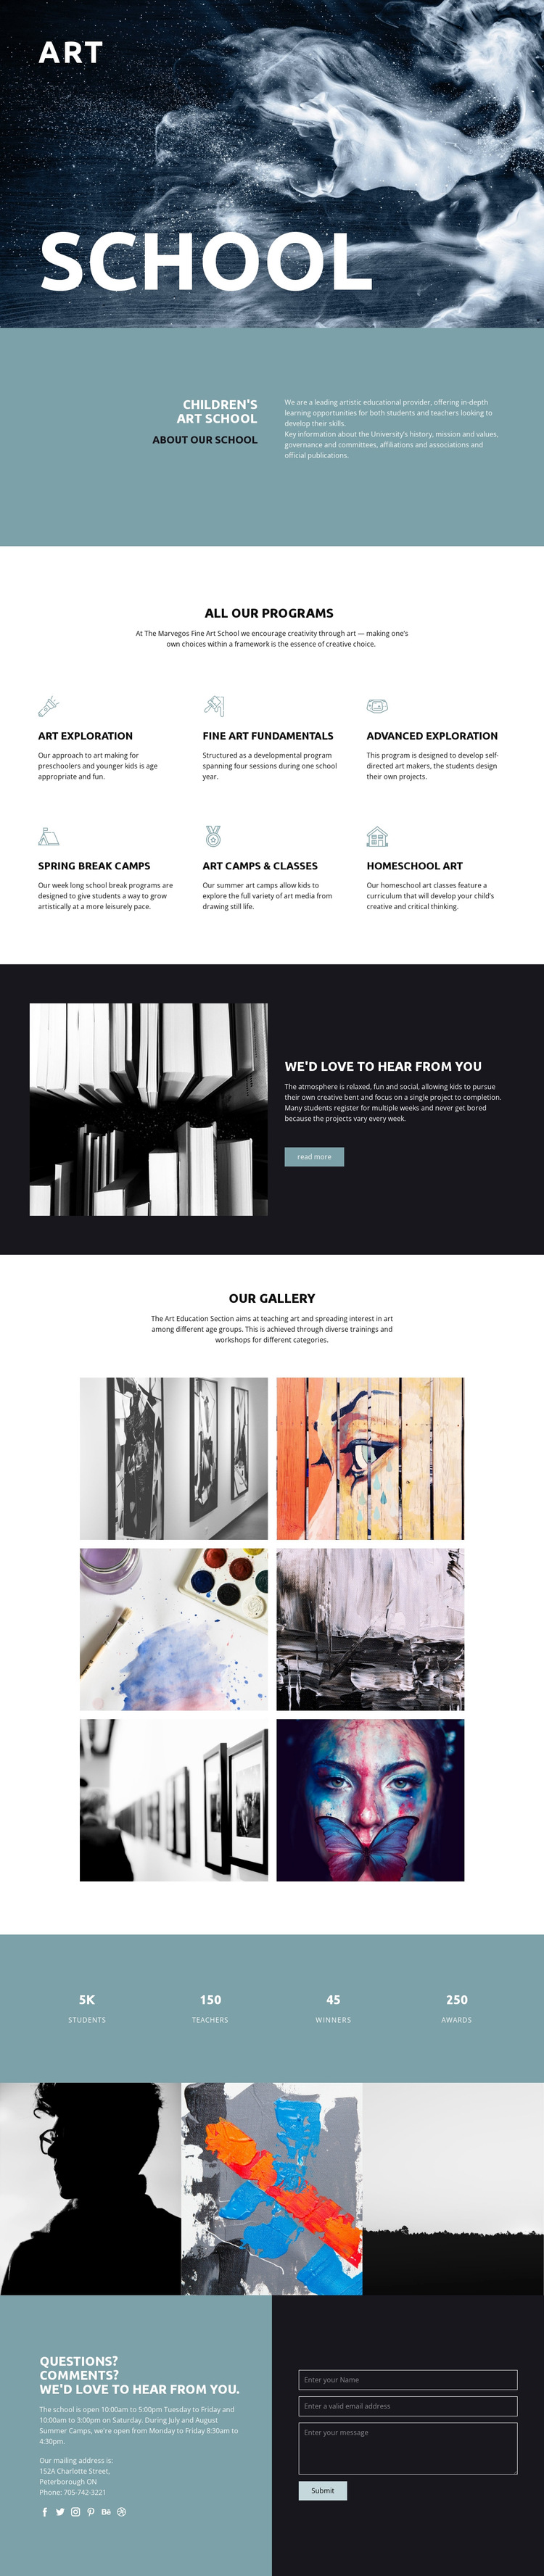 School of artistic education HTML5 Template